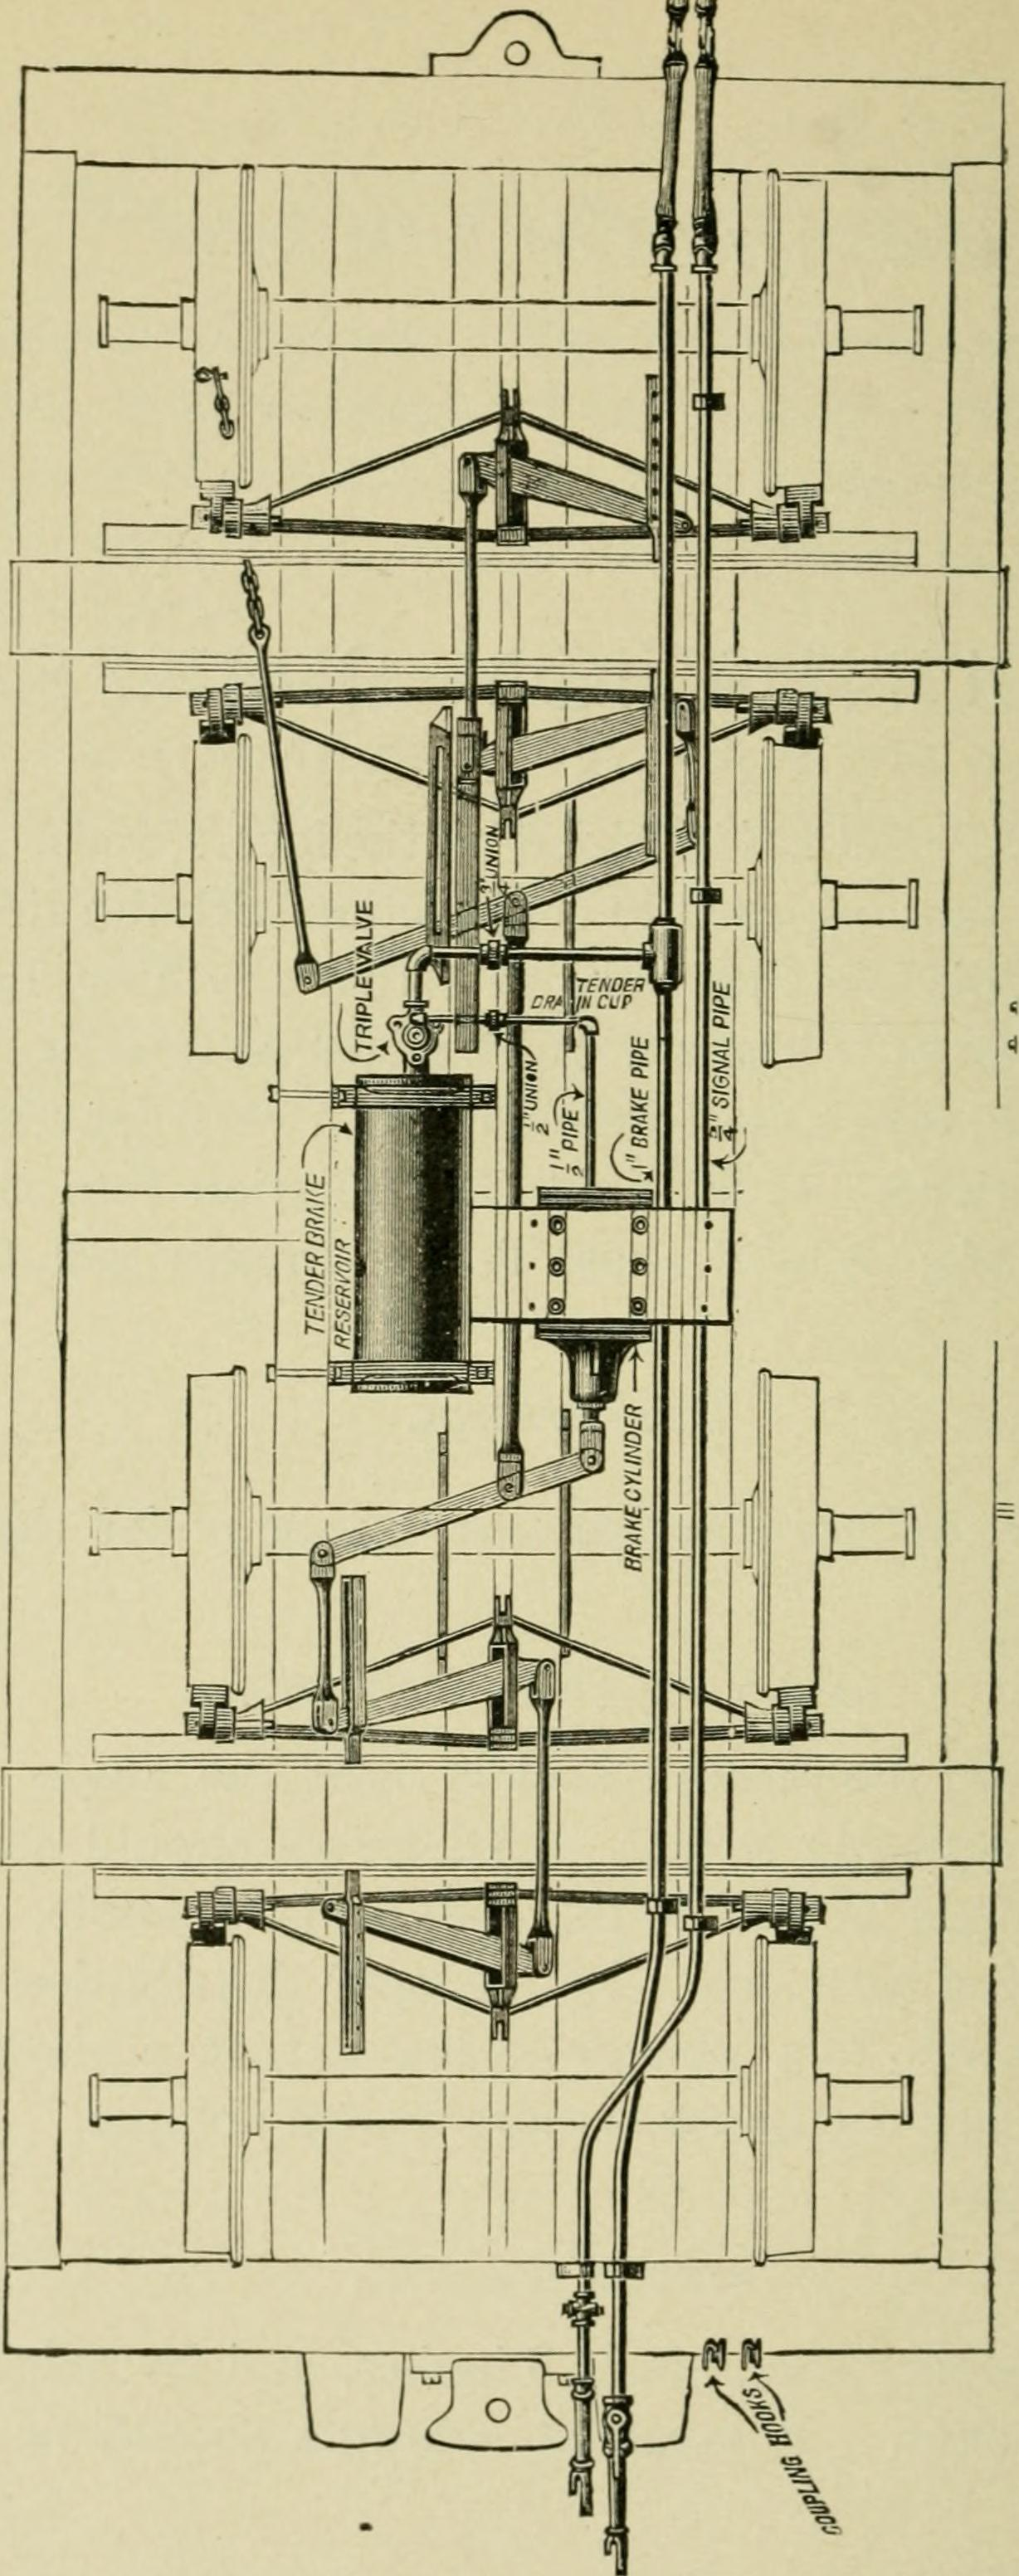 hight resolution of file diseases of the air brake system their causes symptoms and cure